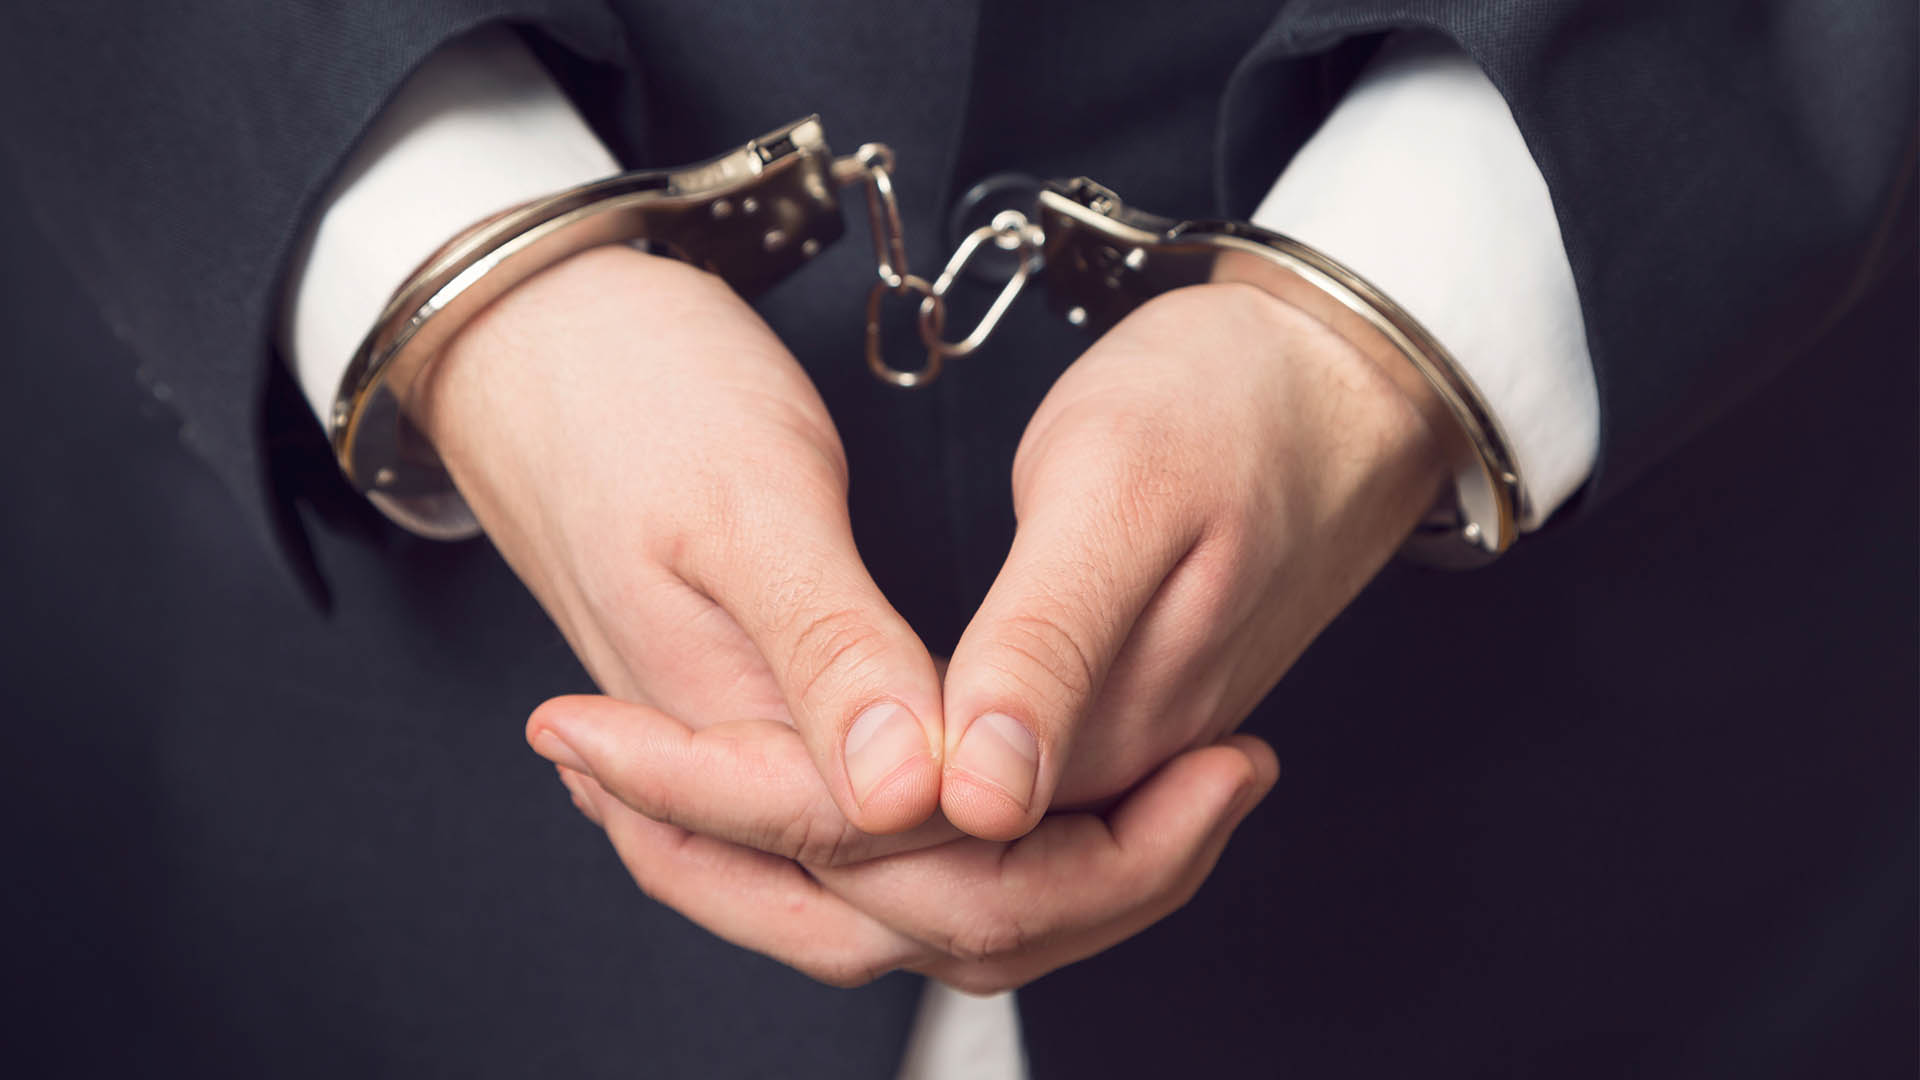 Crook Who Cheated Mumbai Builder Of Rs. 6 Crores Arrested, Found With Fake IDs